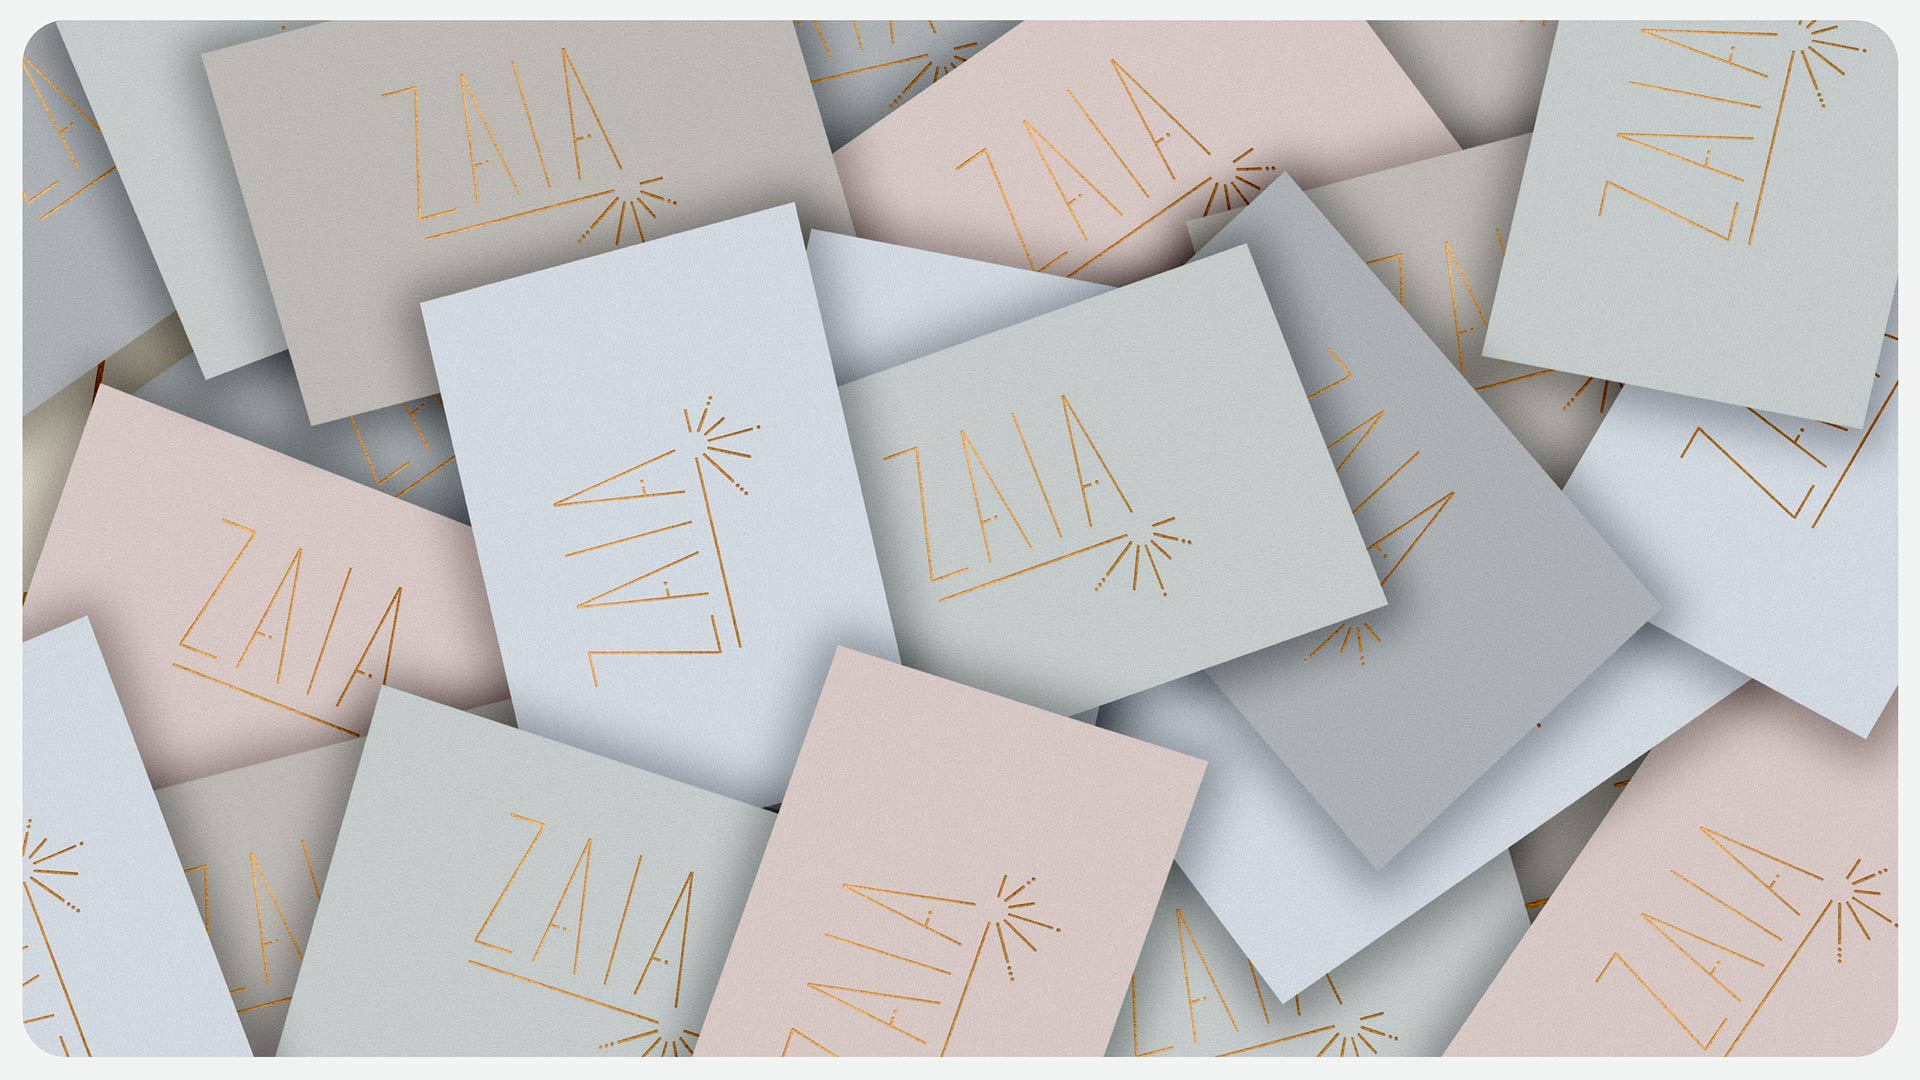 Identity design for ZAIA